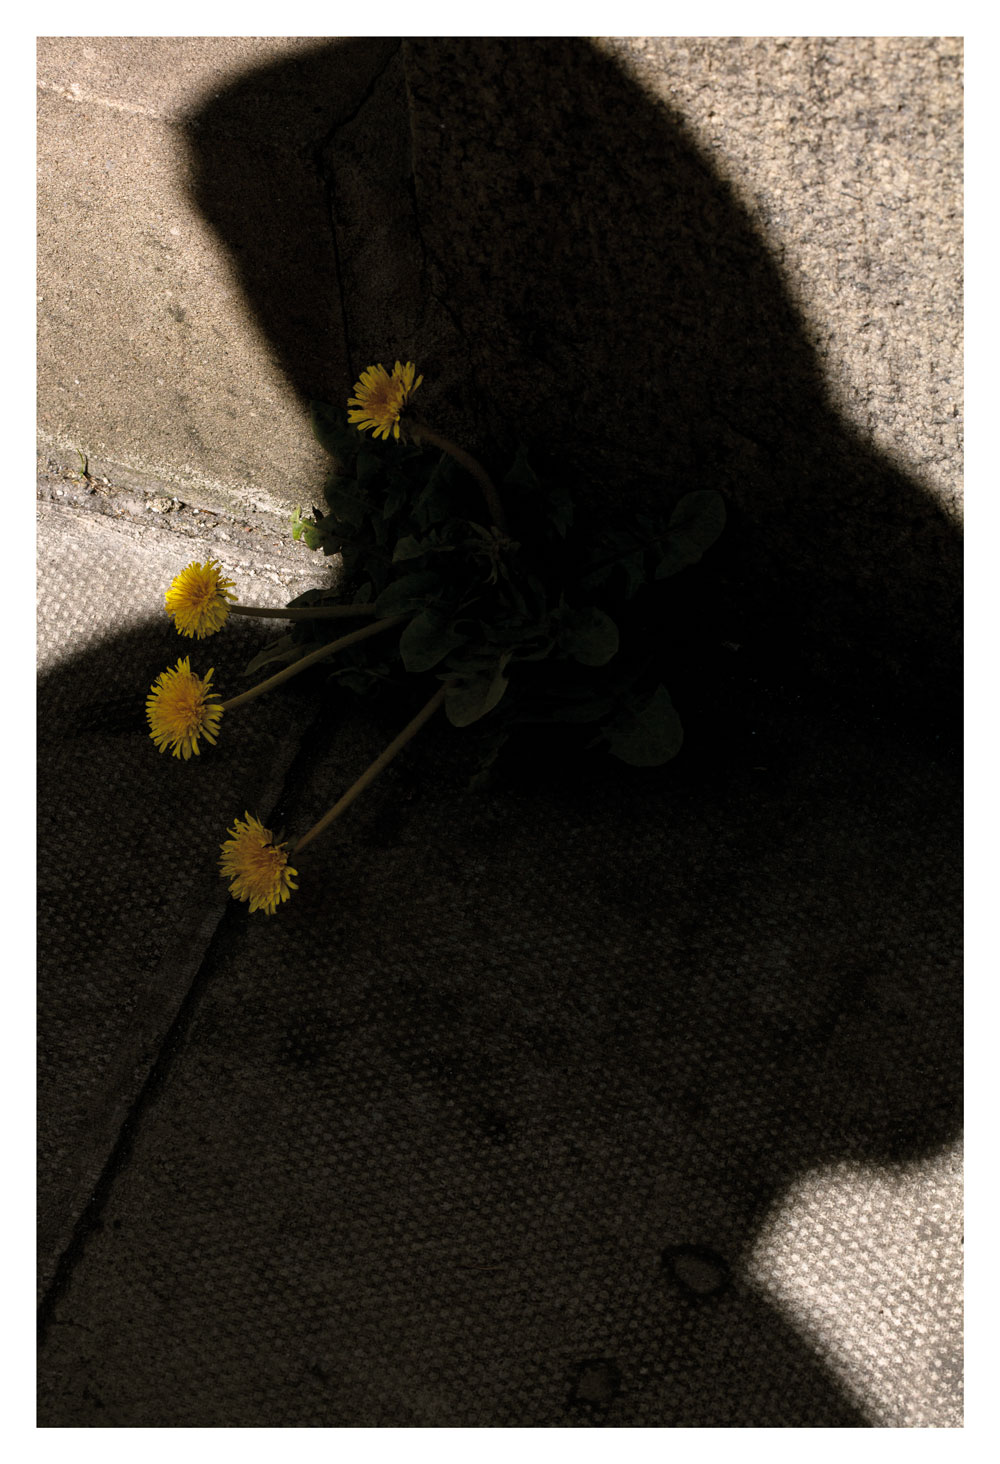 Melissa Spiccia | SEE FLOWERS IN HELL YOUR SHADOW MELISSA SPICCIA